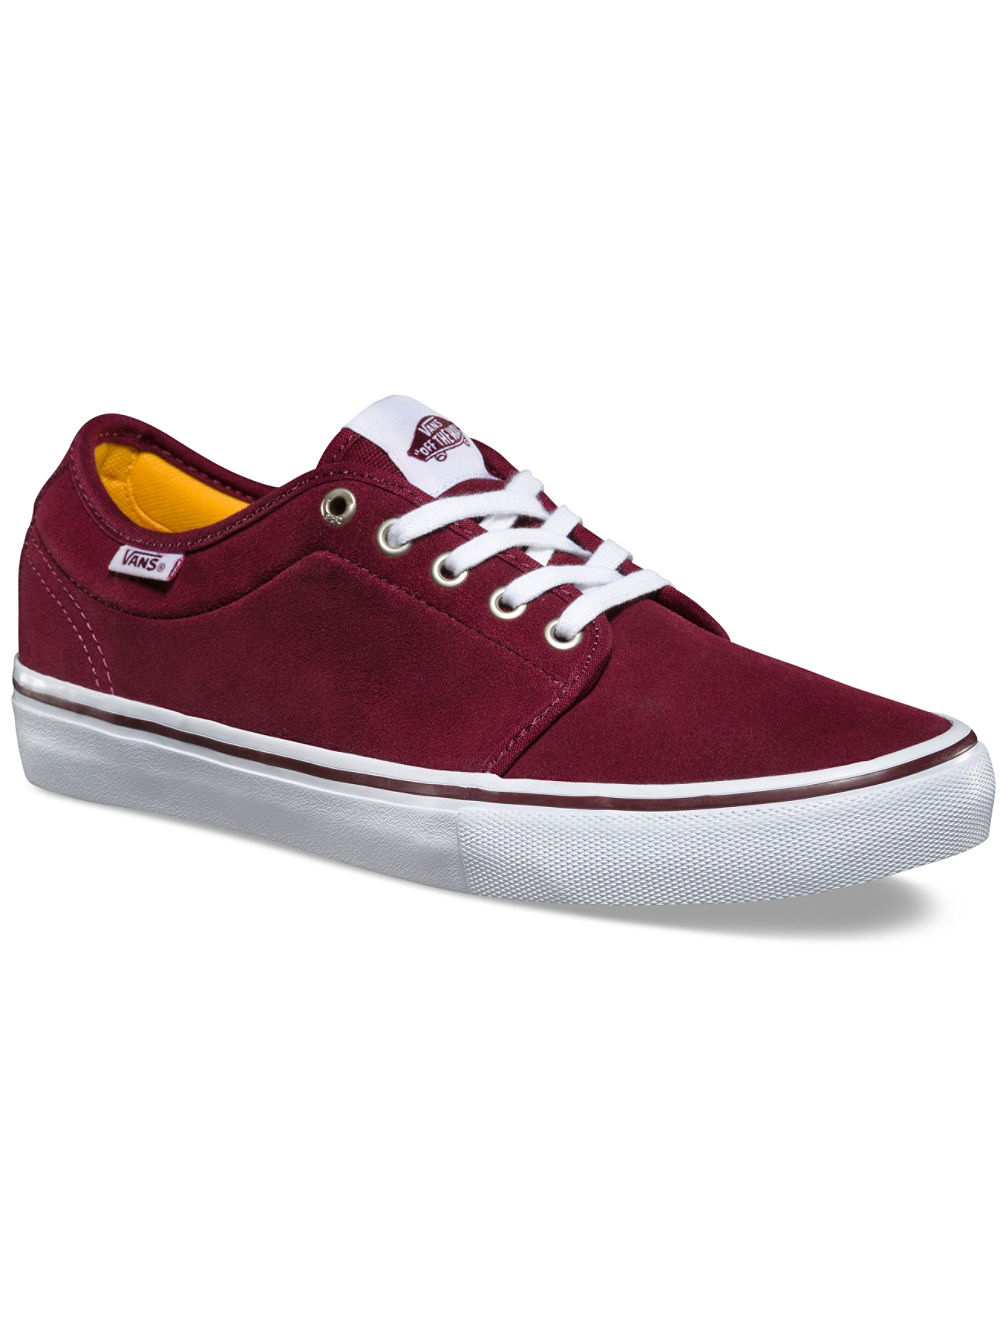 Vans Chukka Low Shoes Sale